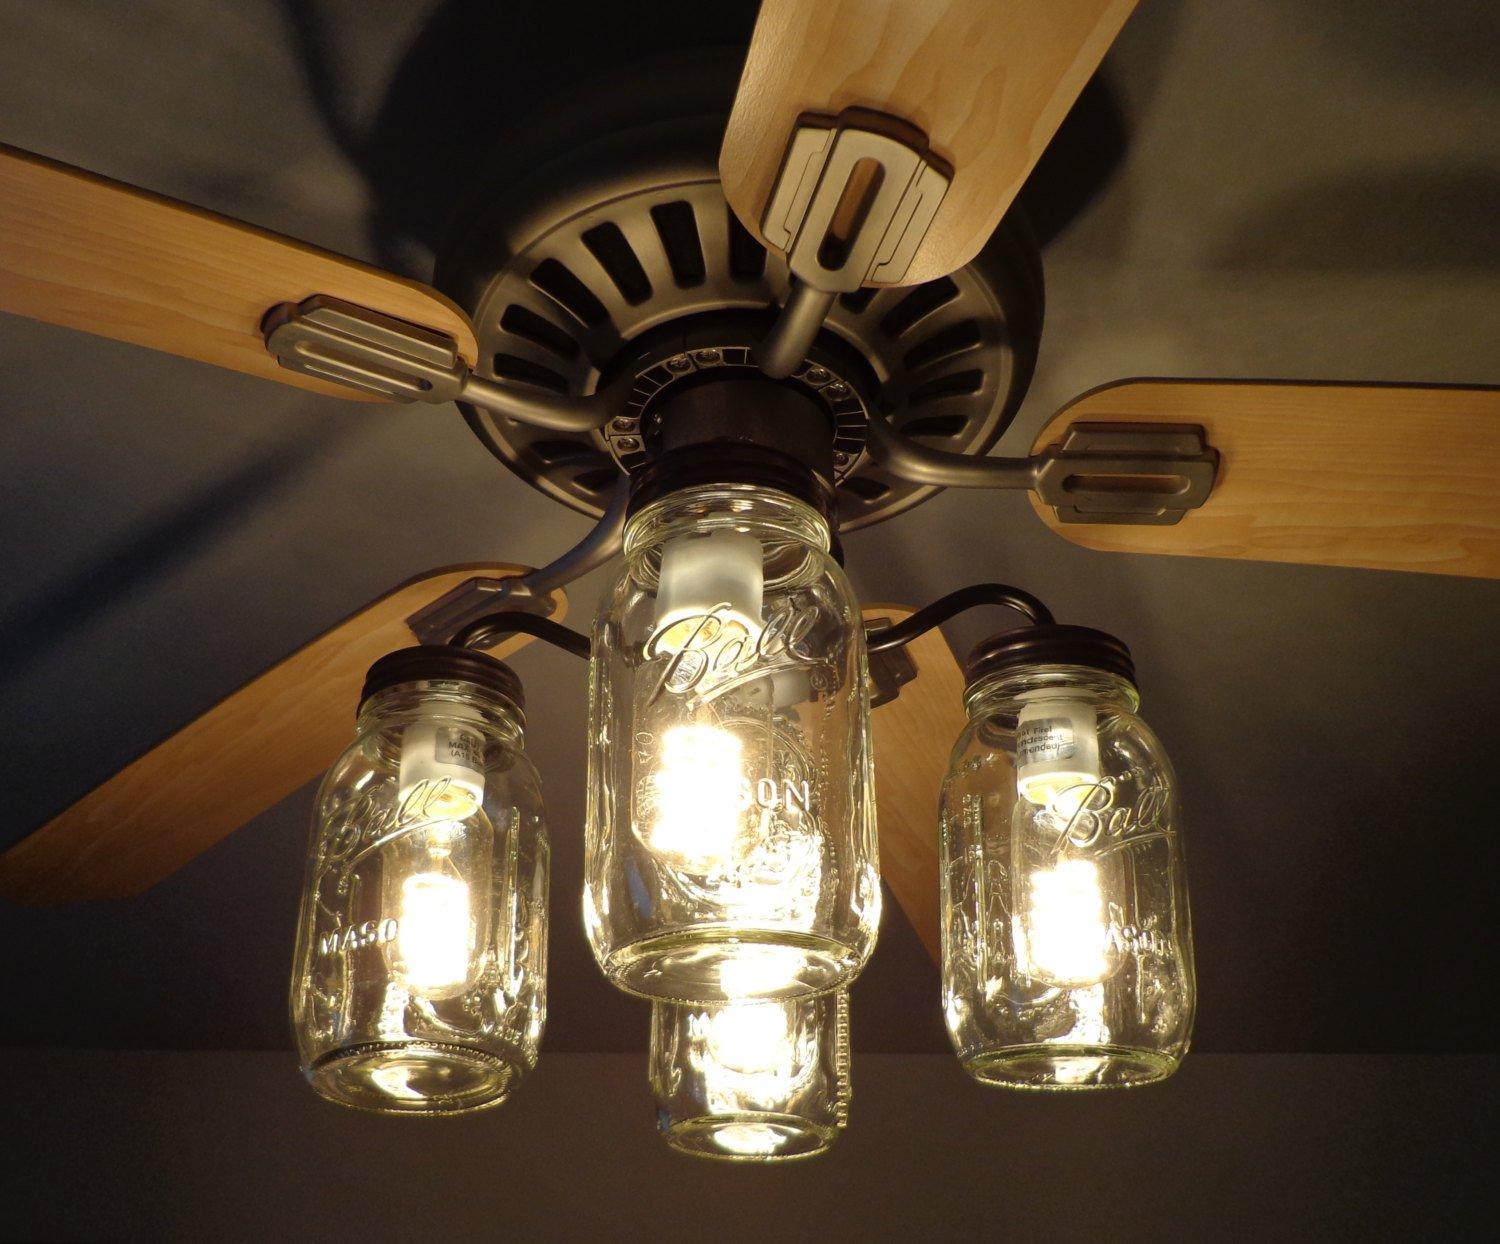 Transform You Ceiling Fan With A Cool Mason Jar Light Kit By Lamp Goods Its Quick And So Charming